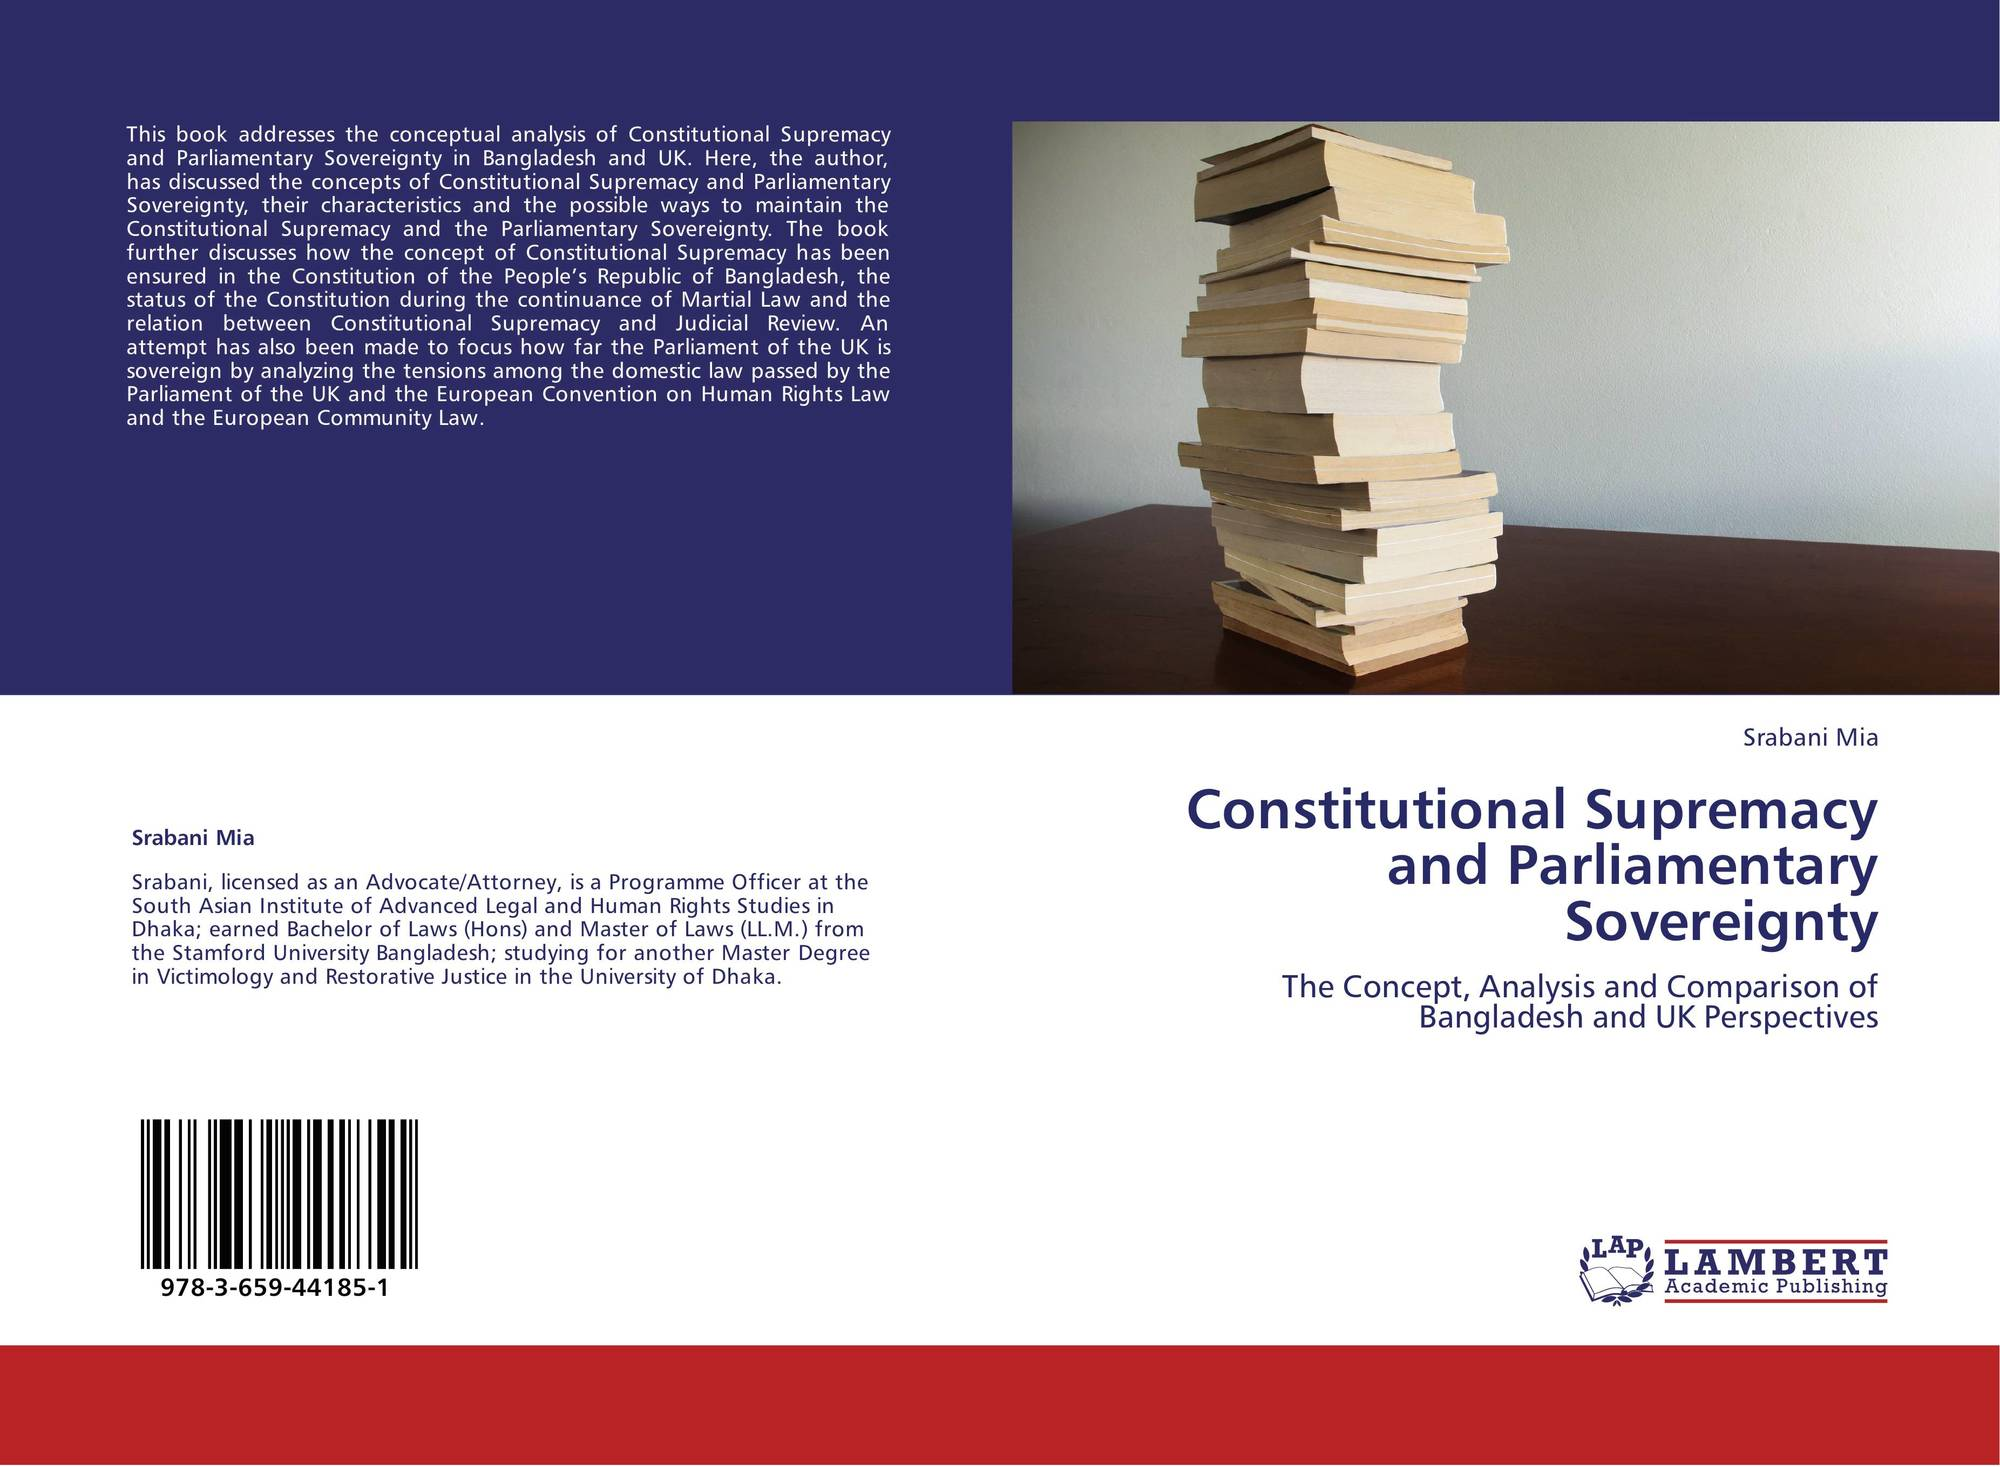 parliamentary supremacy and the uks constitution Cheryl saunders & anna dziedzic constitution following the precedents set by the united states and sovereignty from the supremacy of parliament under a written.